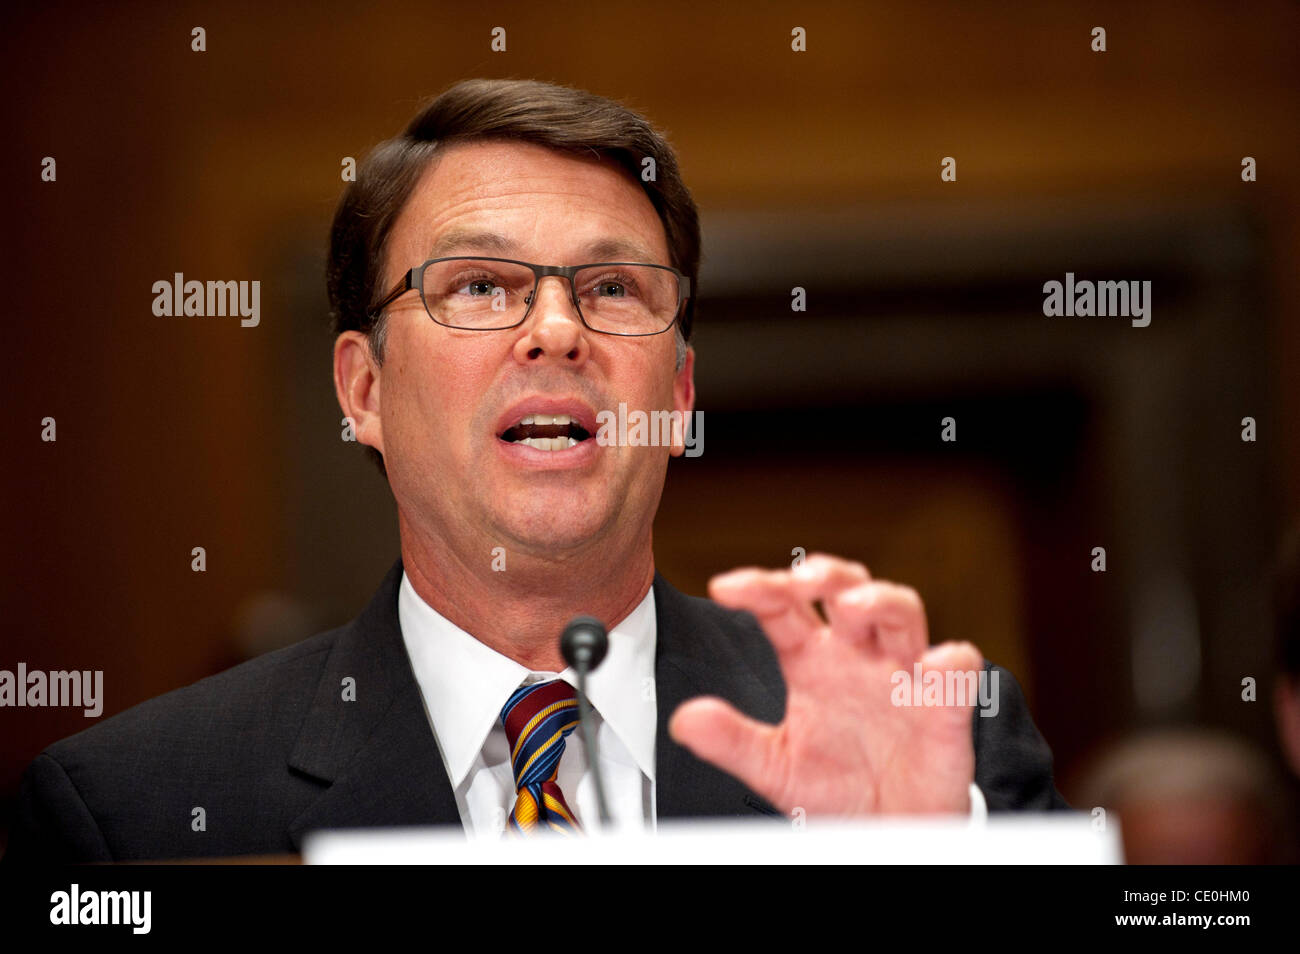 Sept. 6, 2011 - Washington, District of Columbia, U.S. - Office of Personnel Management Director JOHN BERRY testifies Stock Photo